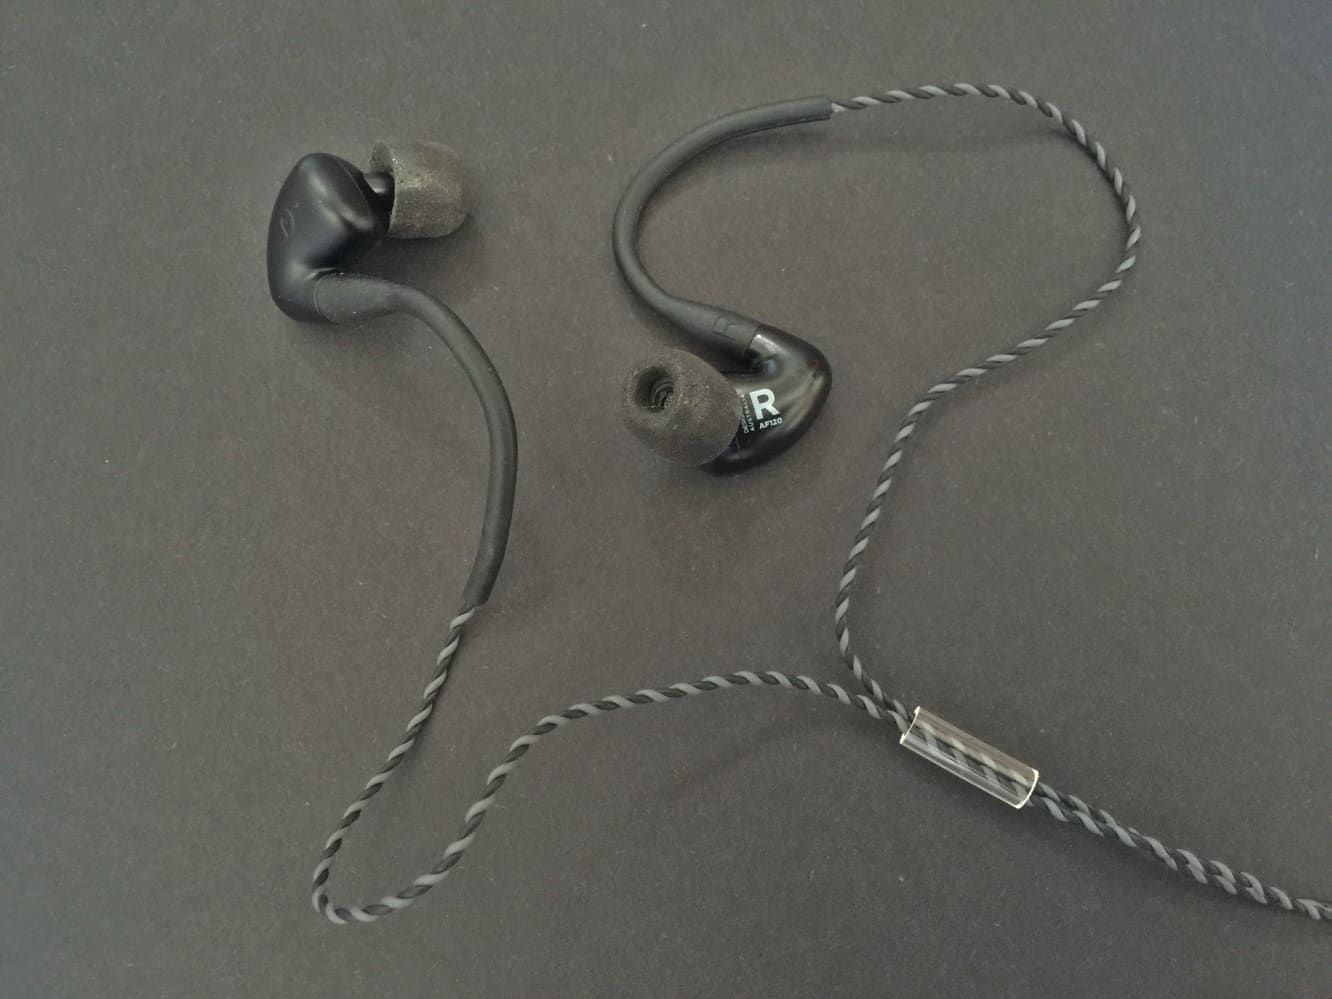 Review: Audiofly AF120 In-Ear Monitors